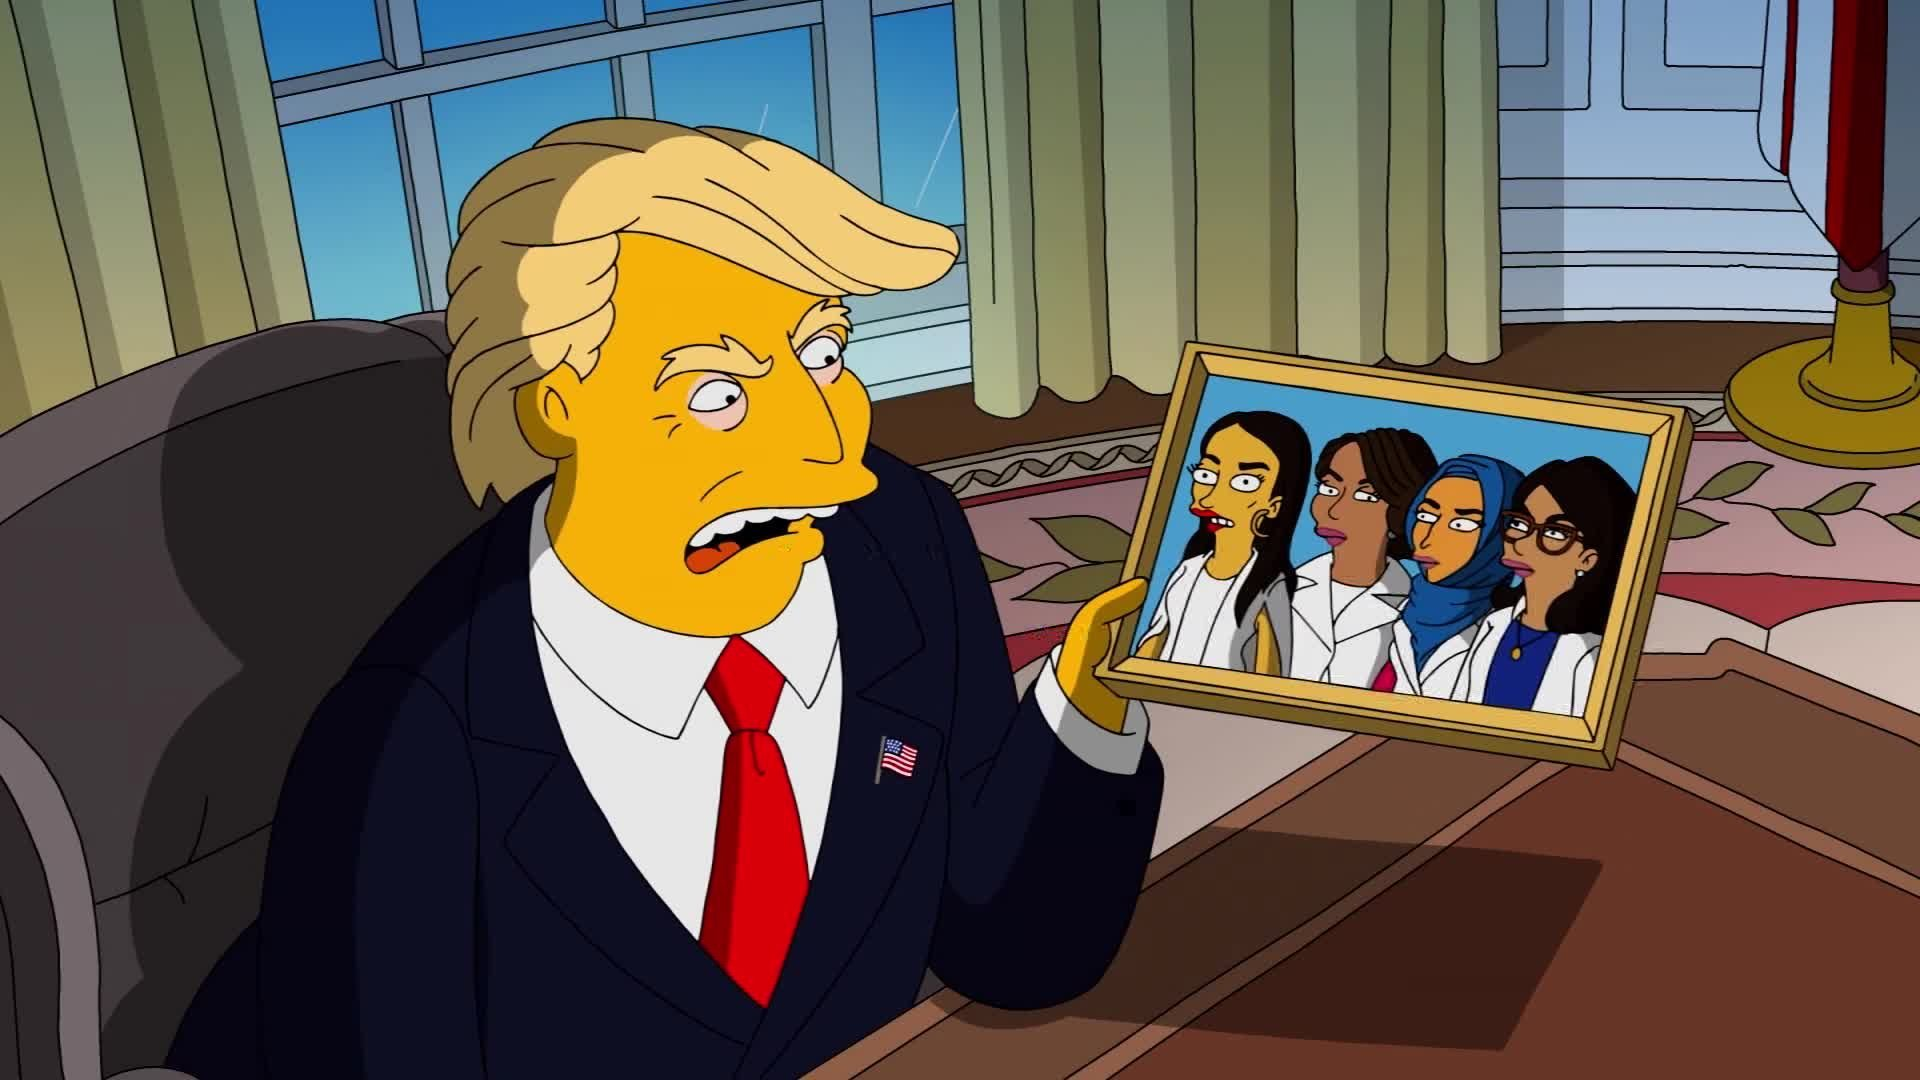 Trump's latest fight with the Squad is in a song on 'The Simpsons'